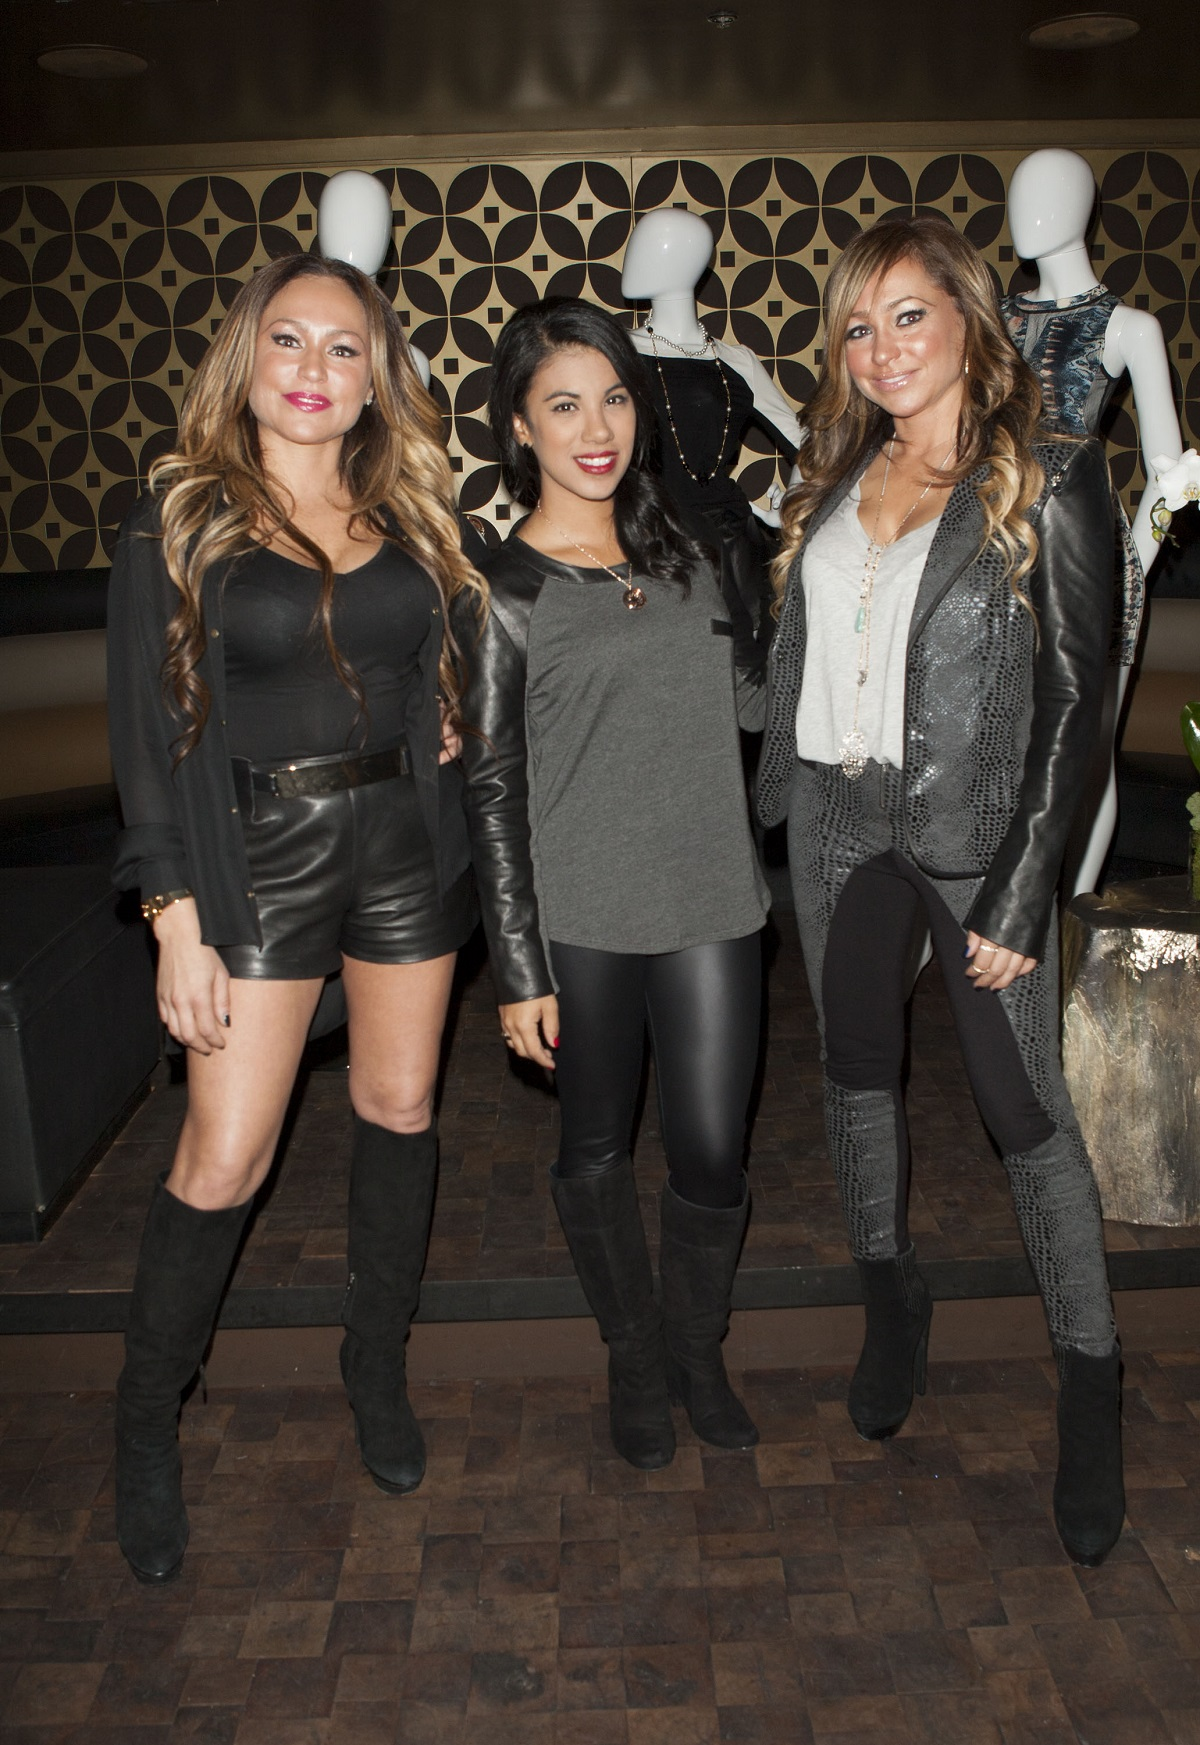 Stacey Silva, Chrissie Fit, and Darcey Silva